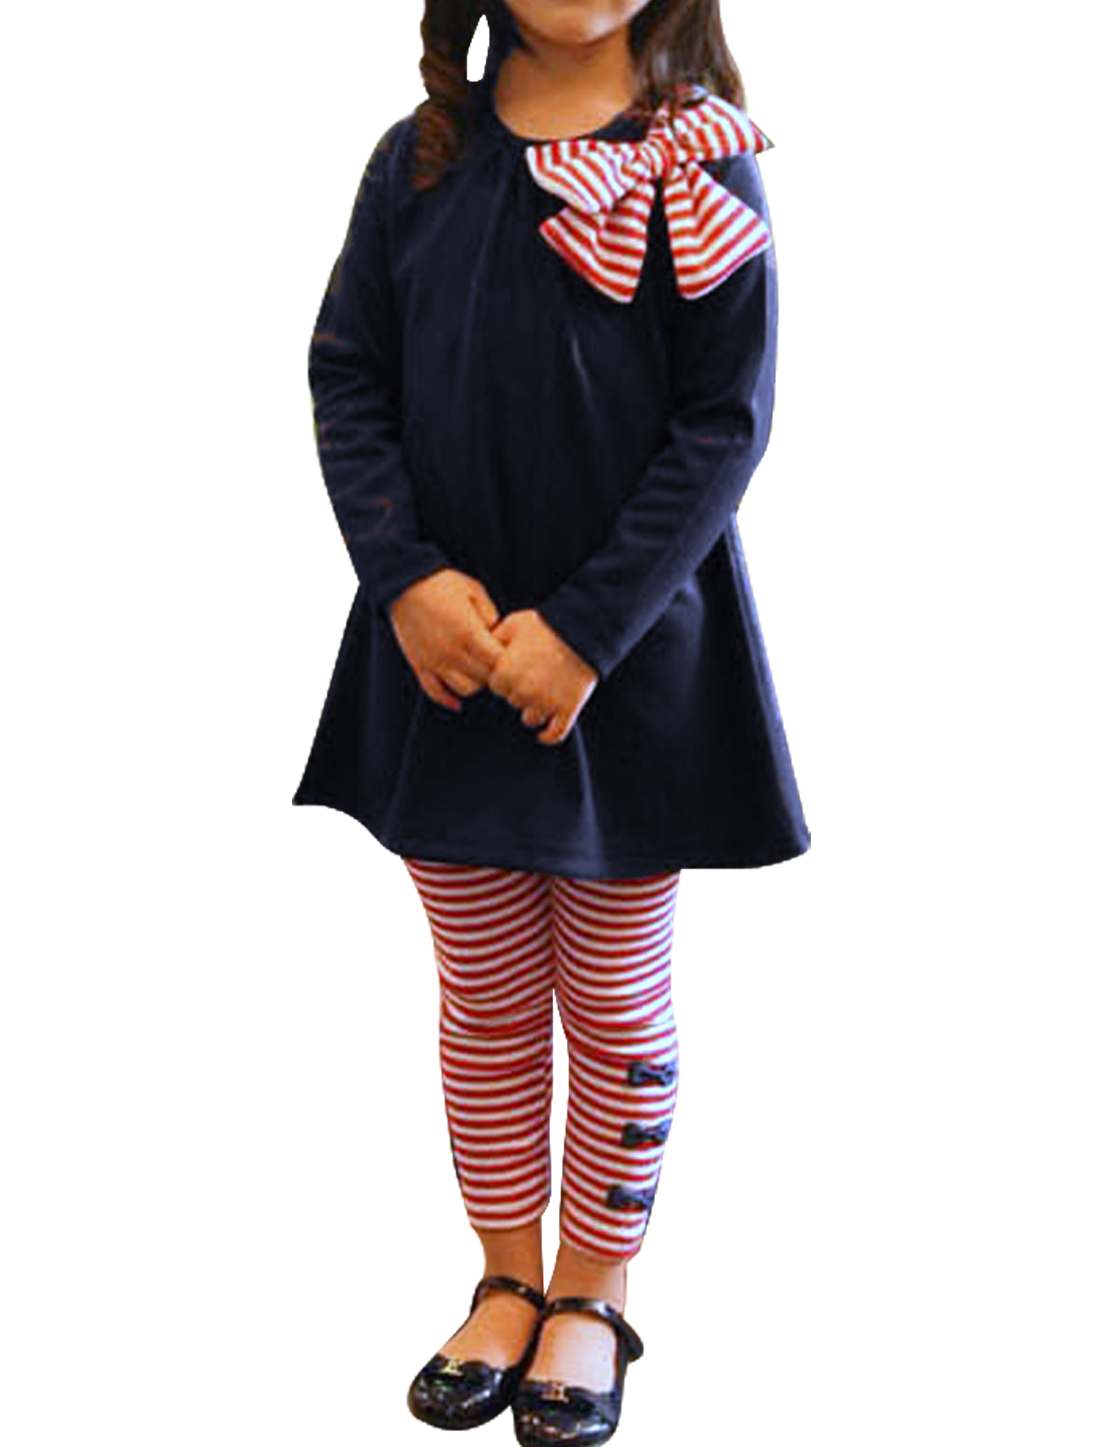 Girls Autumn Wearing Long Sleeve Shirt & Stripes Pants Navy Blue Red 2T